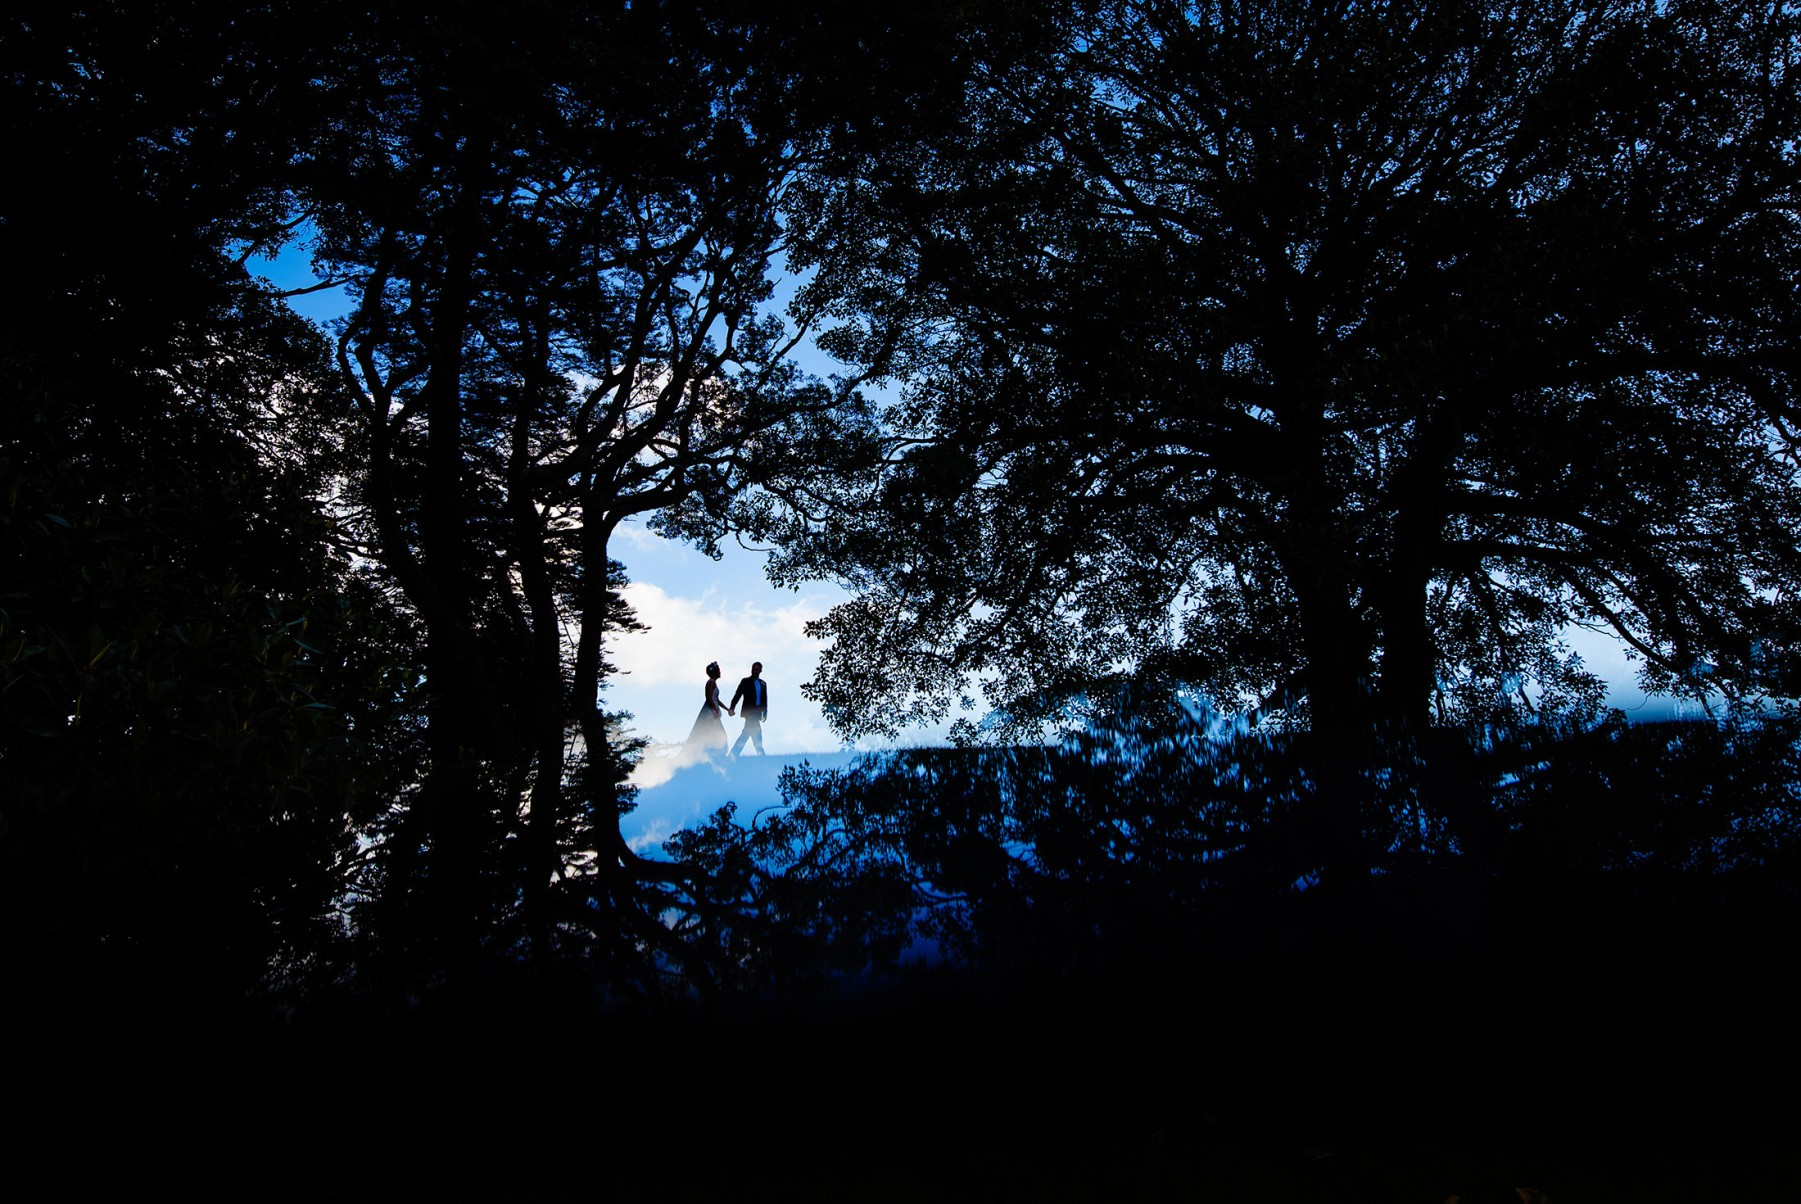 forrest, dark, wedding, outdoor, nature, photography, blue, silhouette